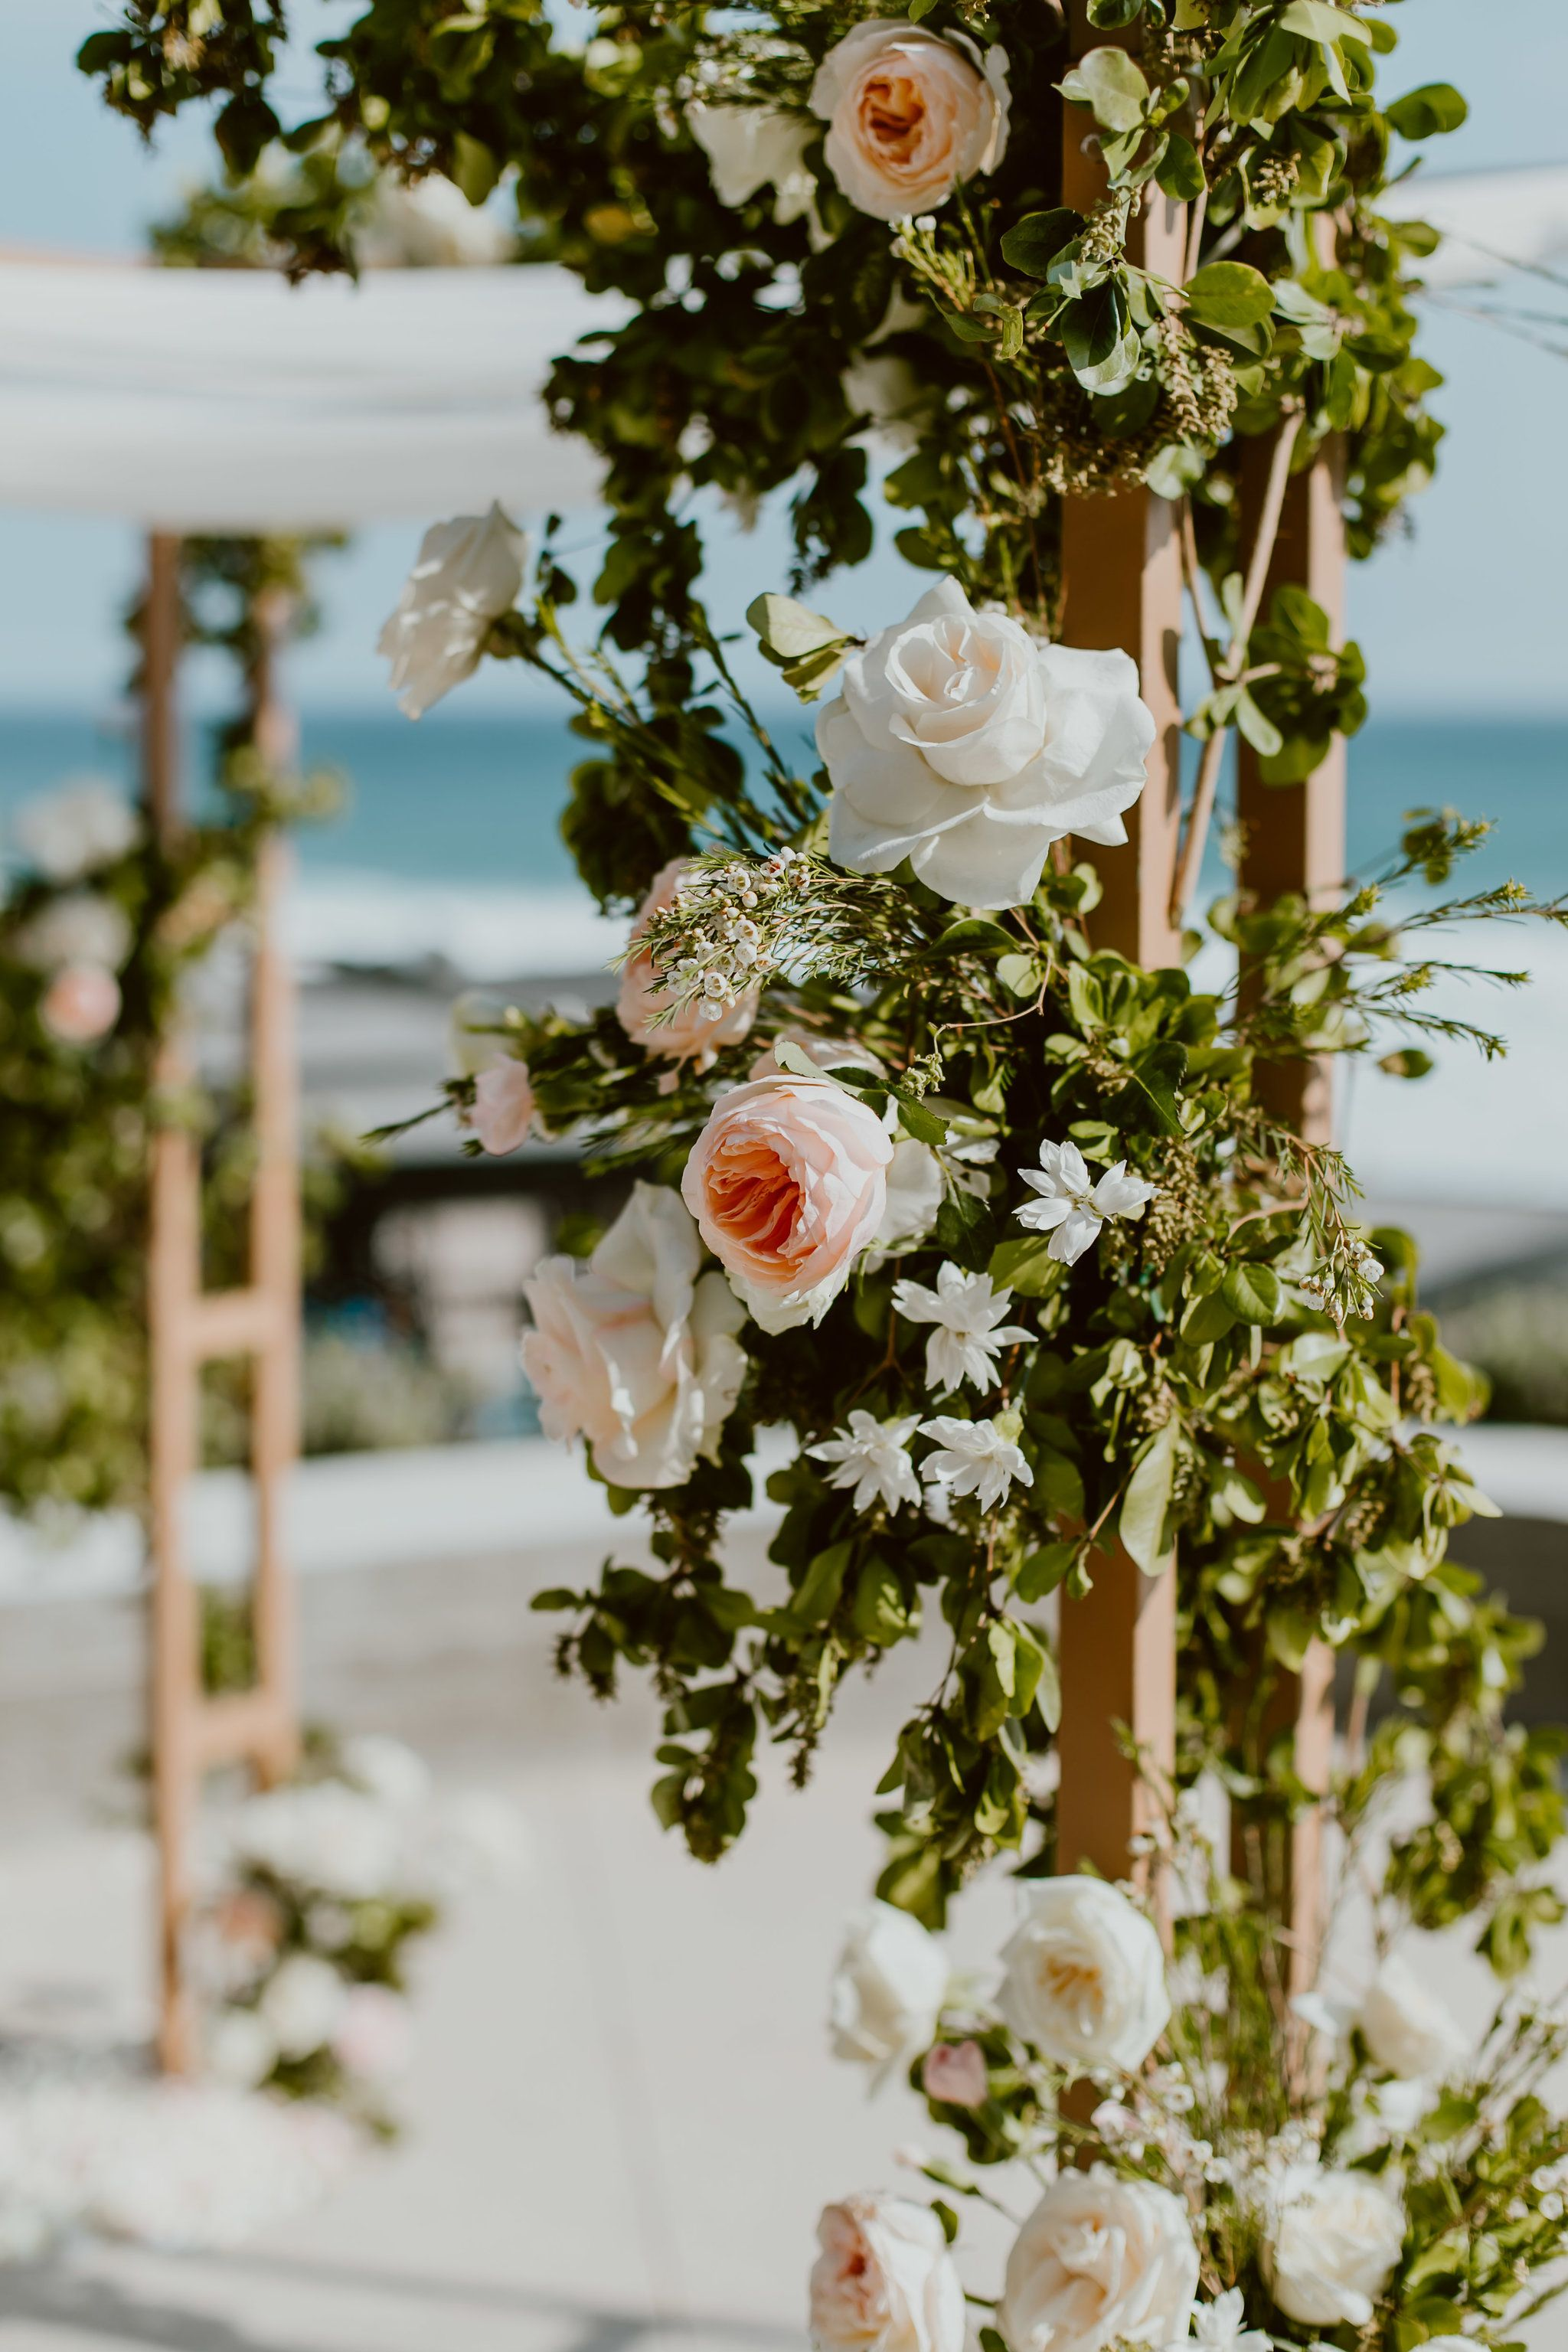 Flower details of roses, Peonies, Ranunculus and greenery for dana and JJ´s wedding at The Cape, by Thompson Hotels. Lola from Florenta Flower Design did this ceremony alter. Wedding Planning by Cabo Wedding Services